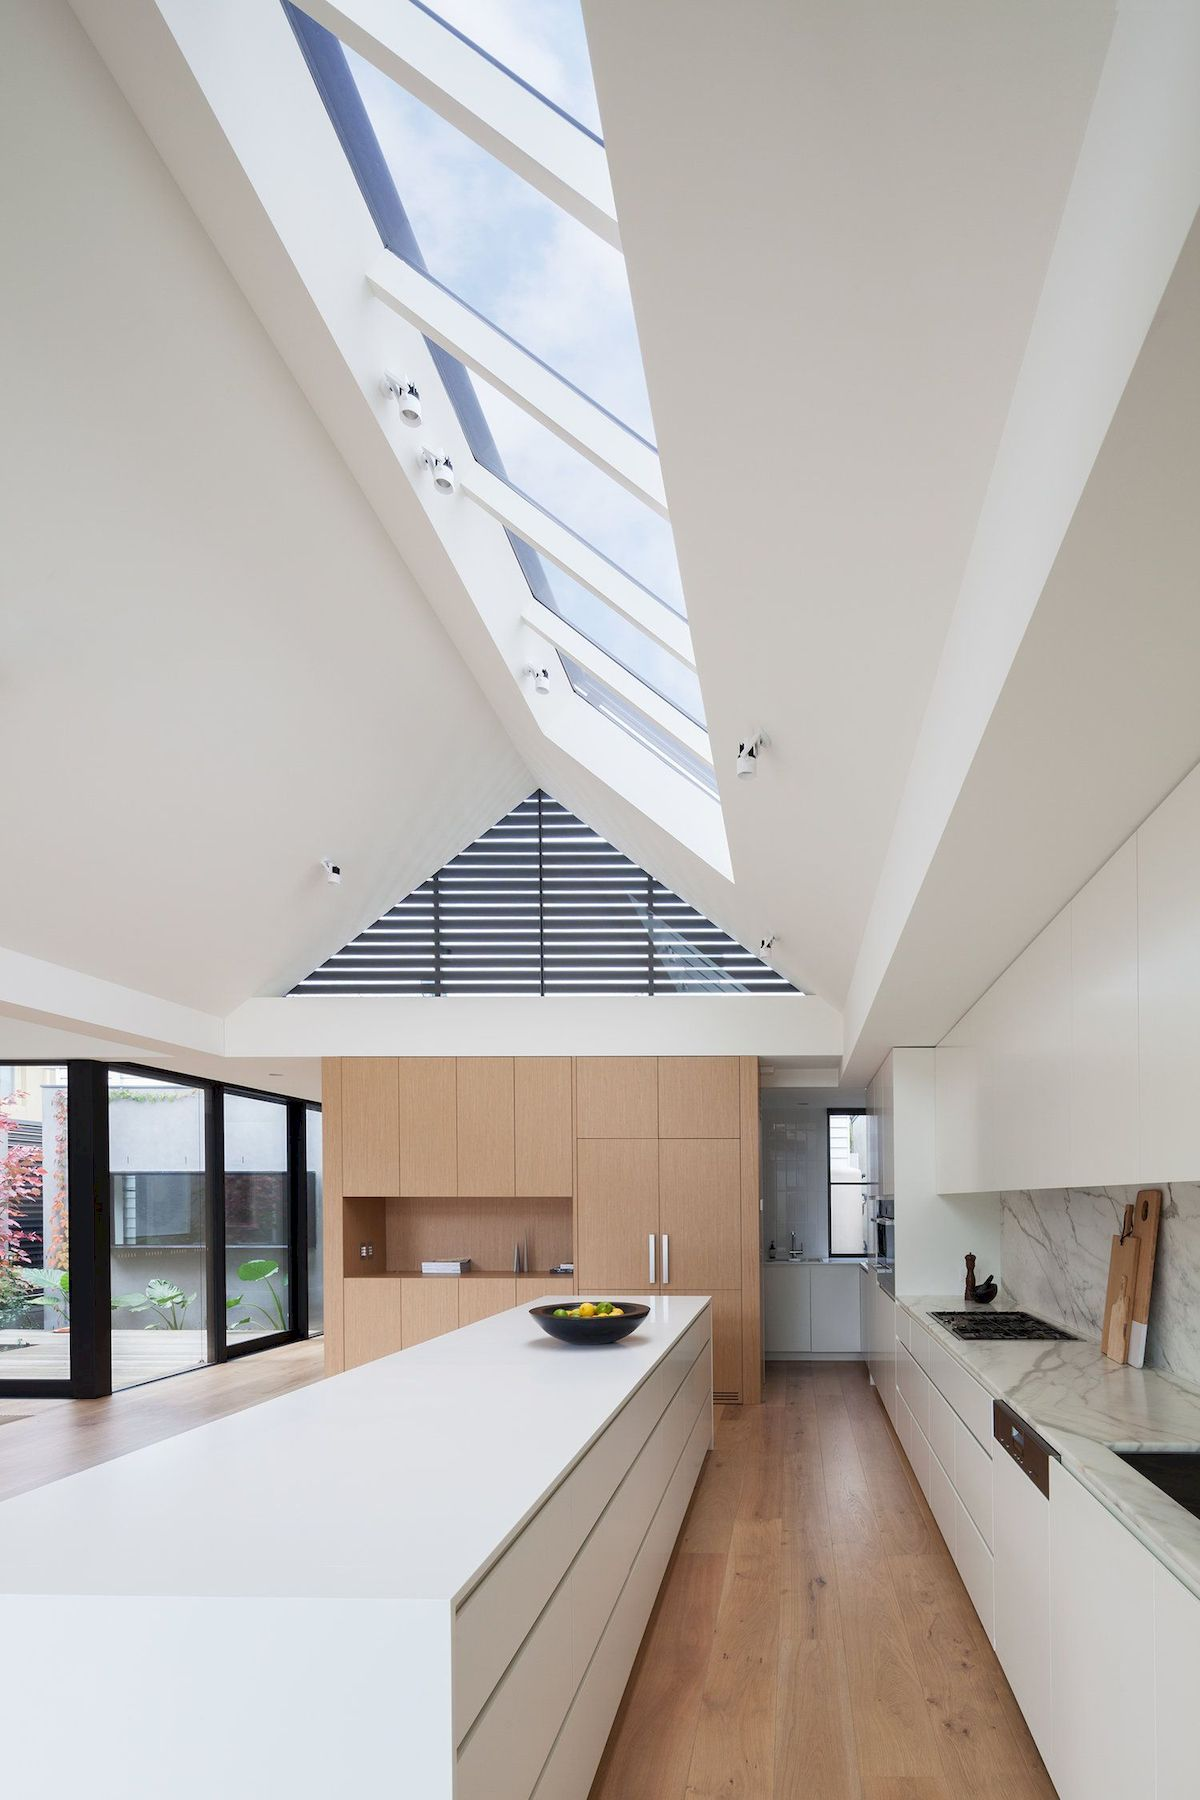 Awesome Kitchen Window Design  jihanshanum is part of Minimalist kitchen design - For what reason are design kitchen windows the most vital element in your kitchen  Kitchen windows give regular light, access to the outside, and most essential, they outline your view